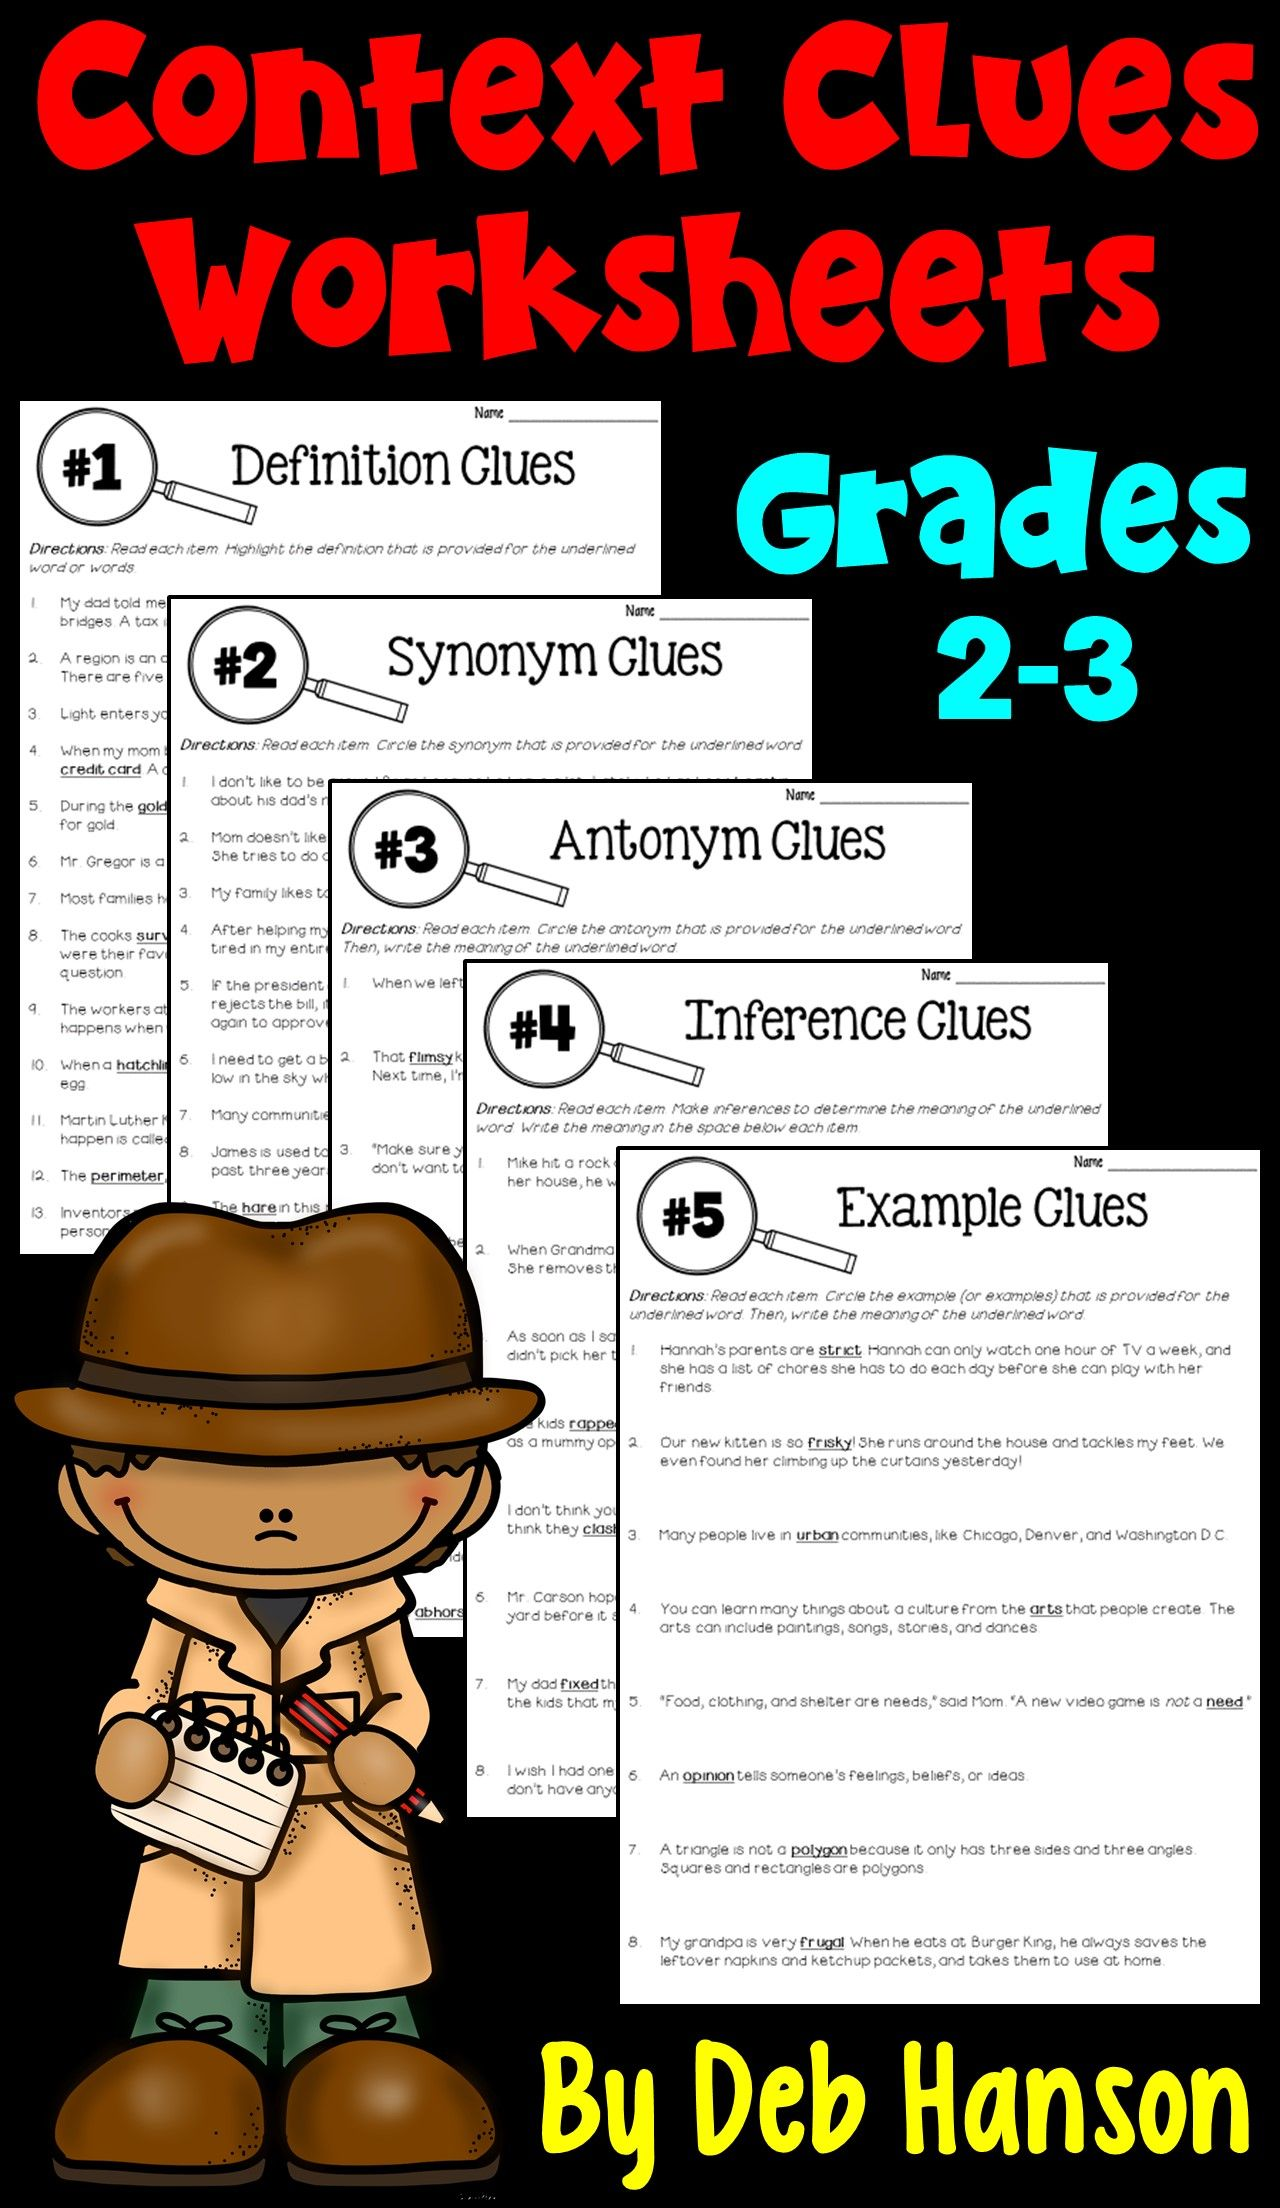 Context Clues Worksheets Focusing On 5 Types Of Clues